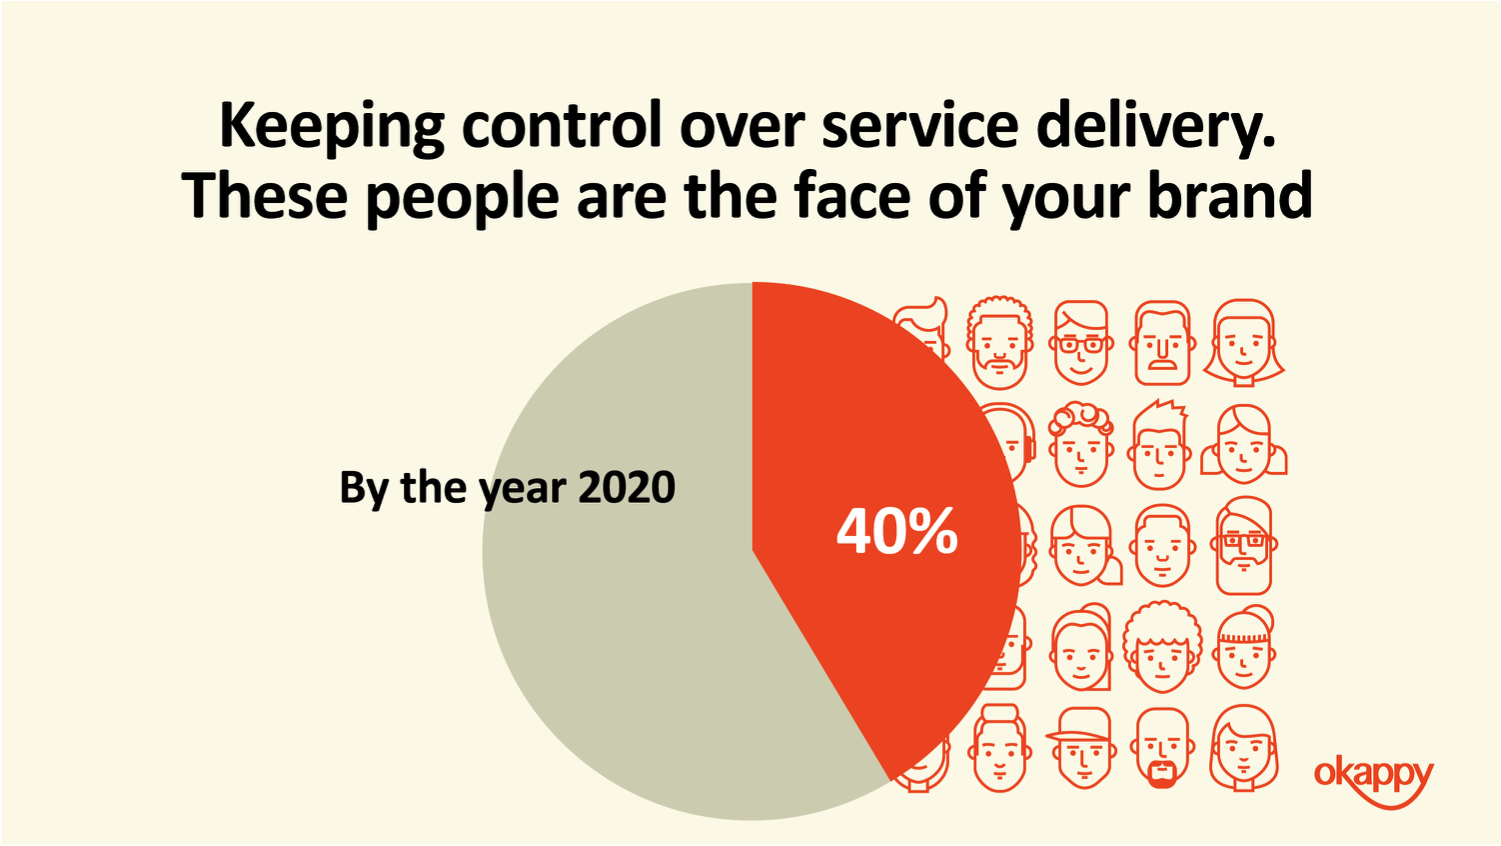 Keeping control service delivery